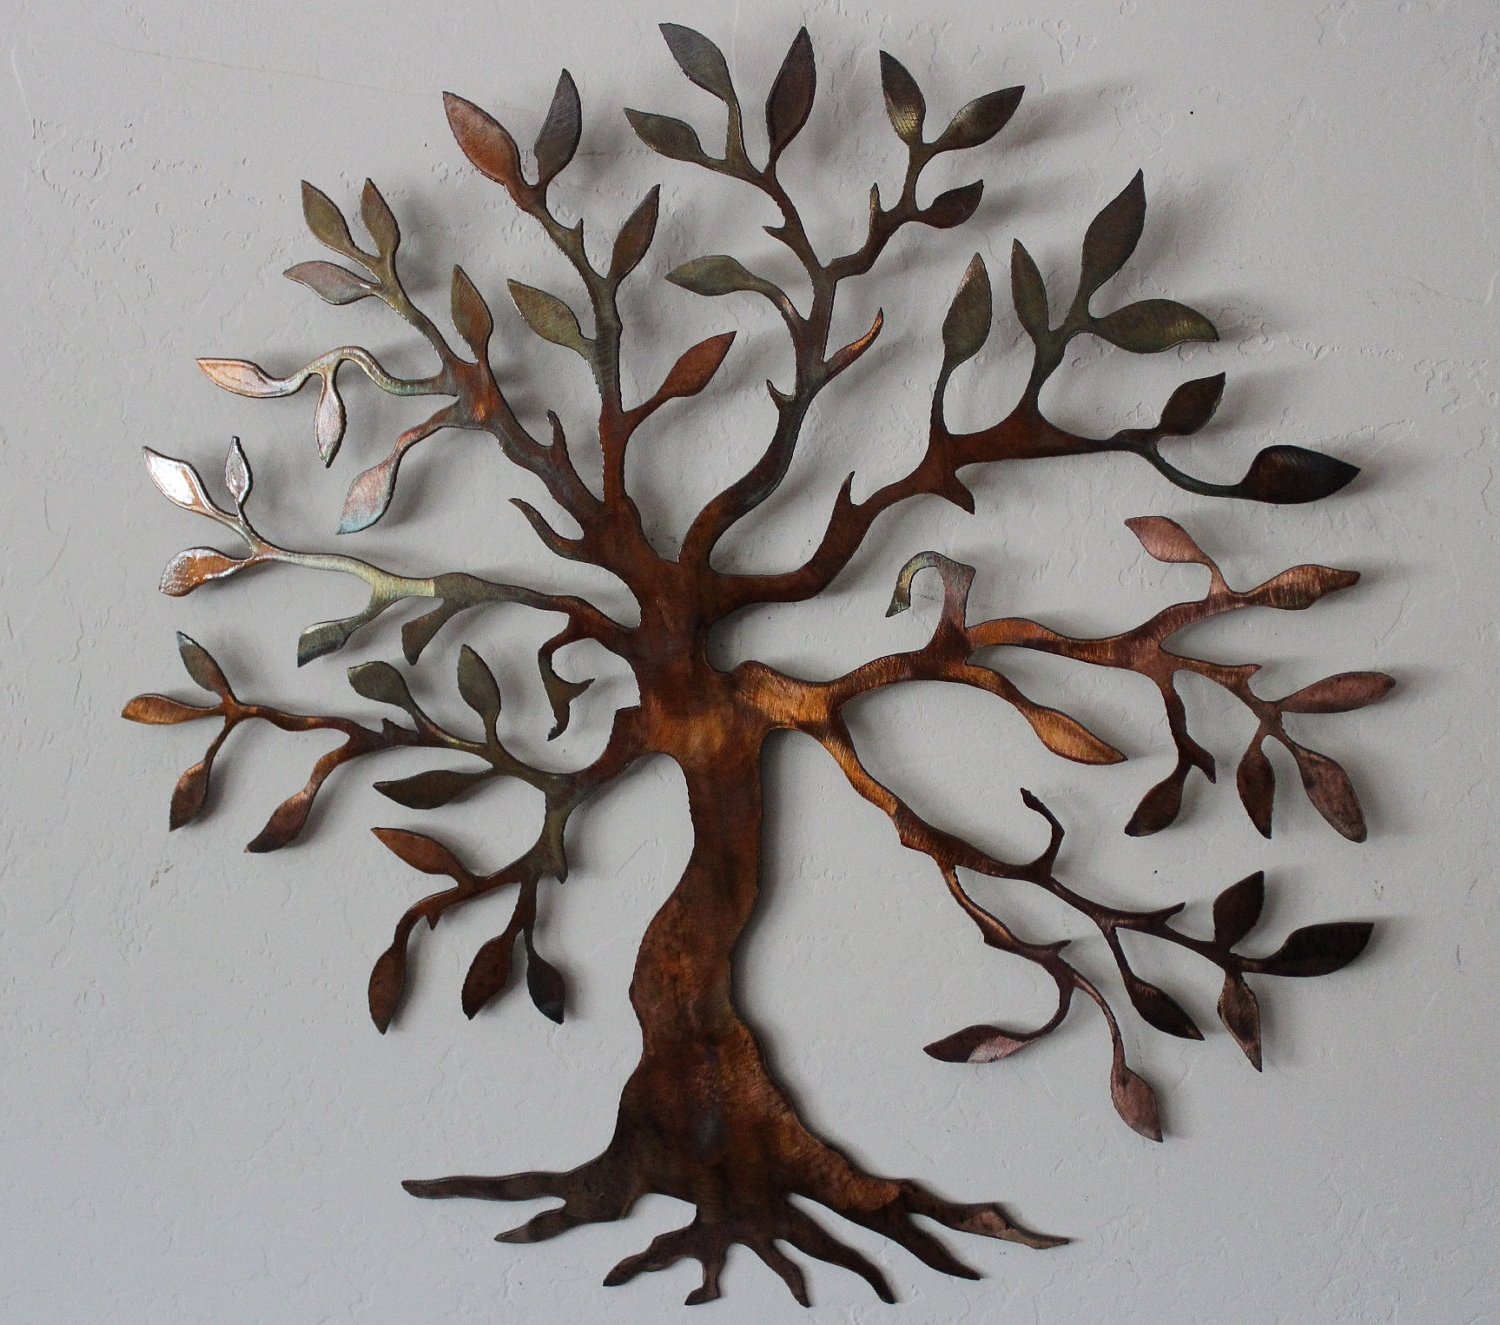 Marvellous Ideas Metal Wall Accents With Olive Tree Of Live Art Intended For Well Known Metal Wall Accents (View 6 of 15)